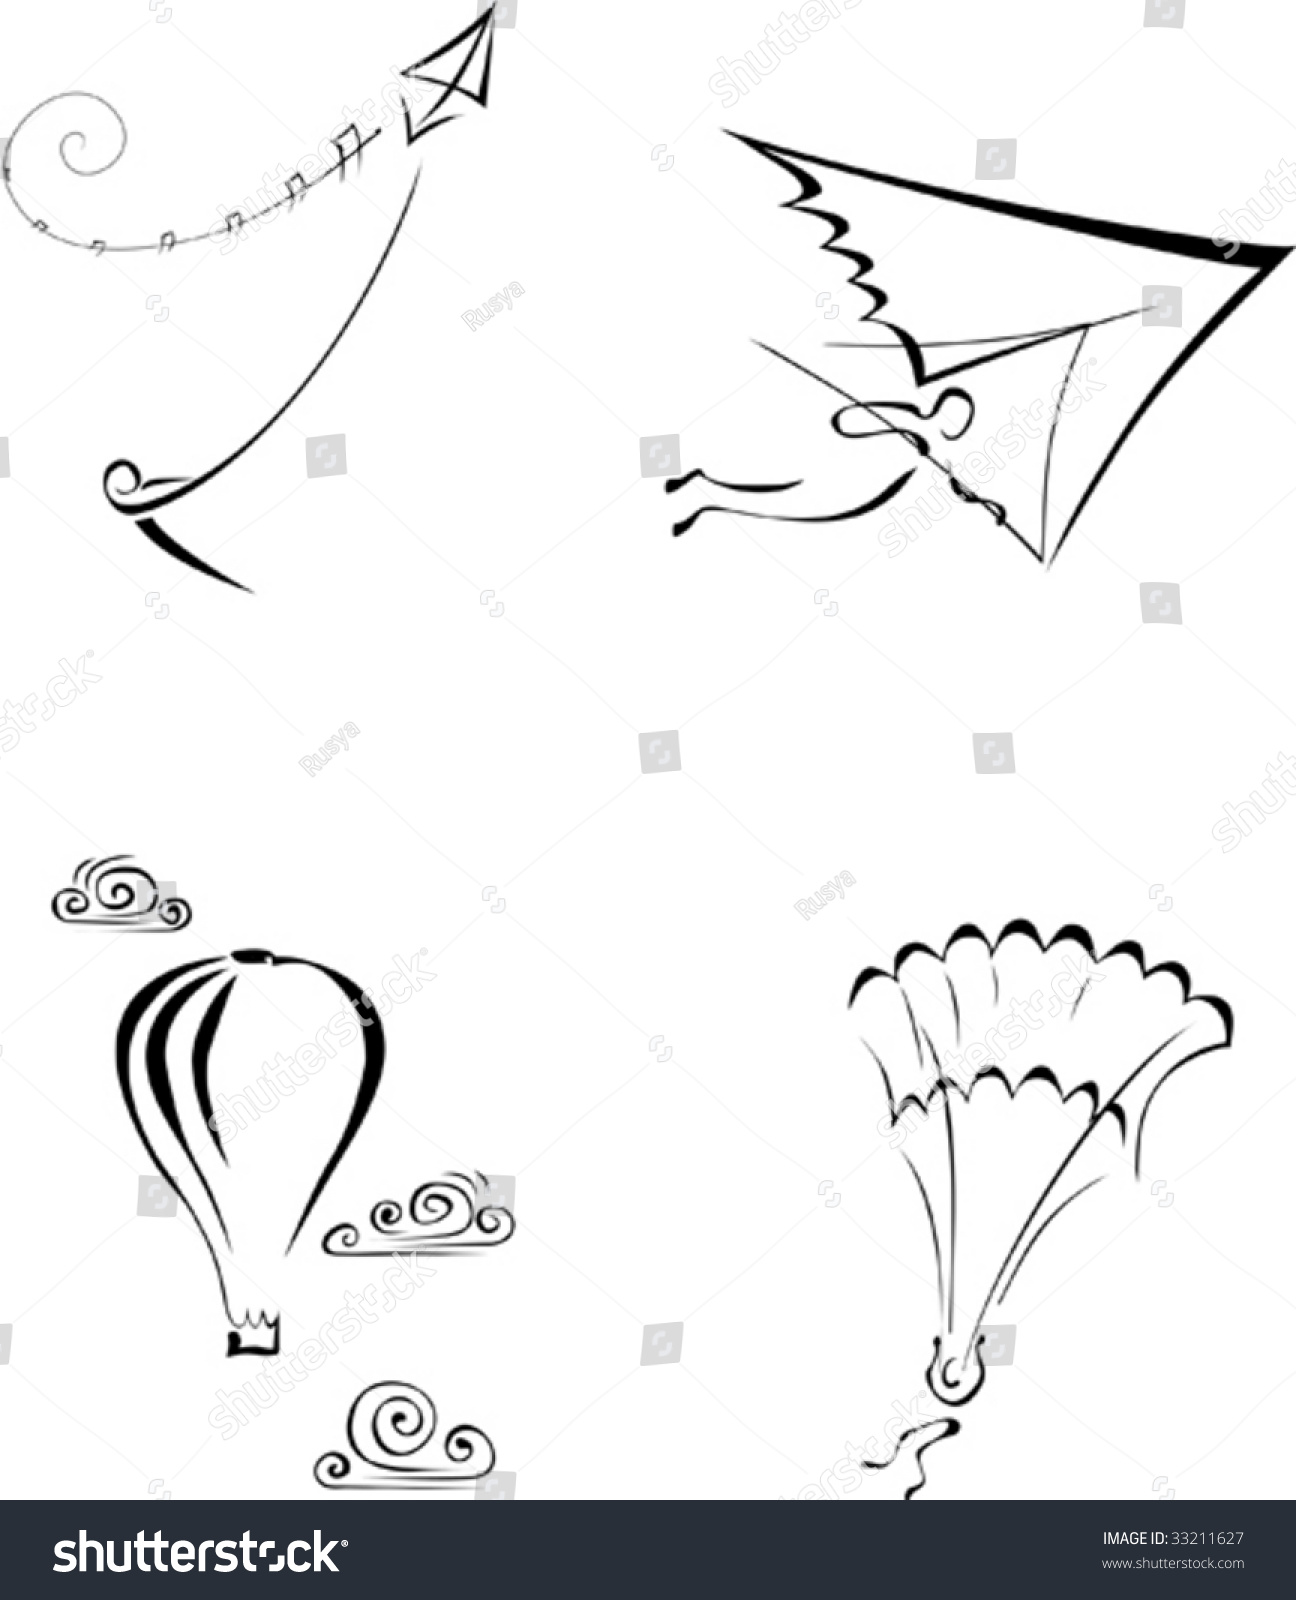 Vector Linear Monochrome Illustration Wind Sports Stock